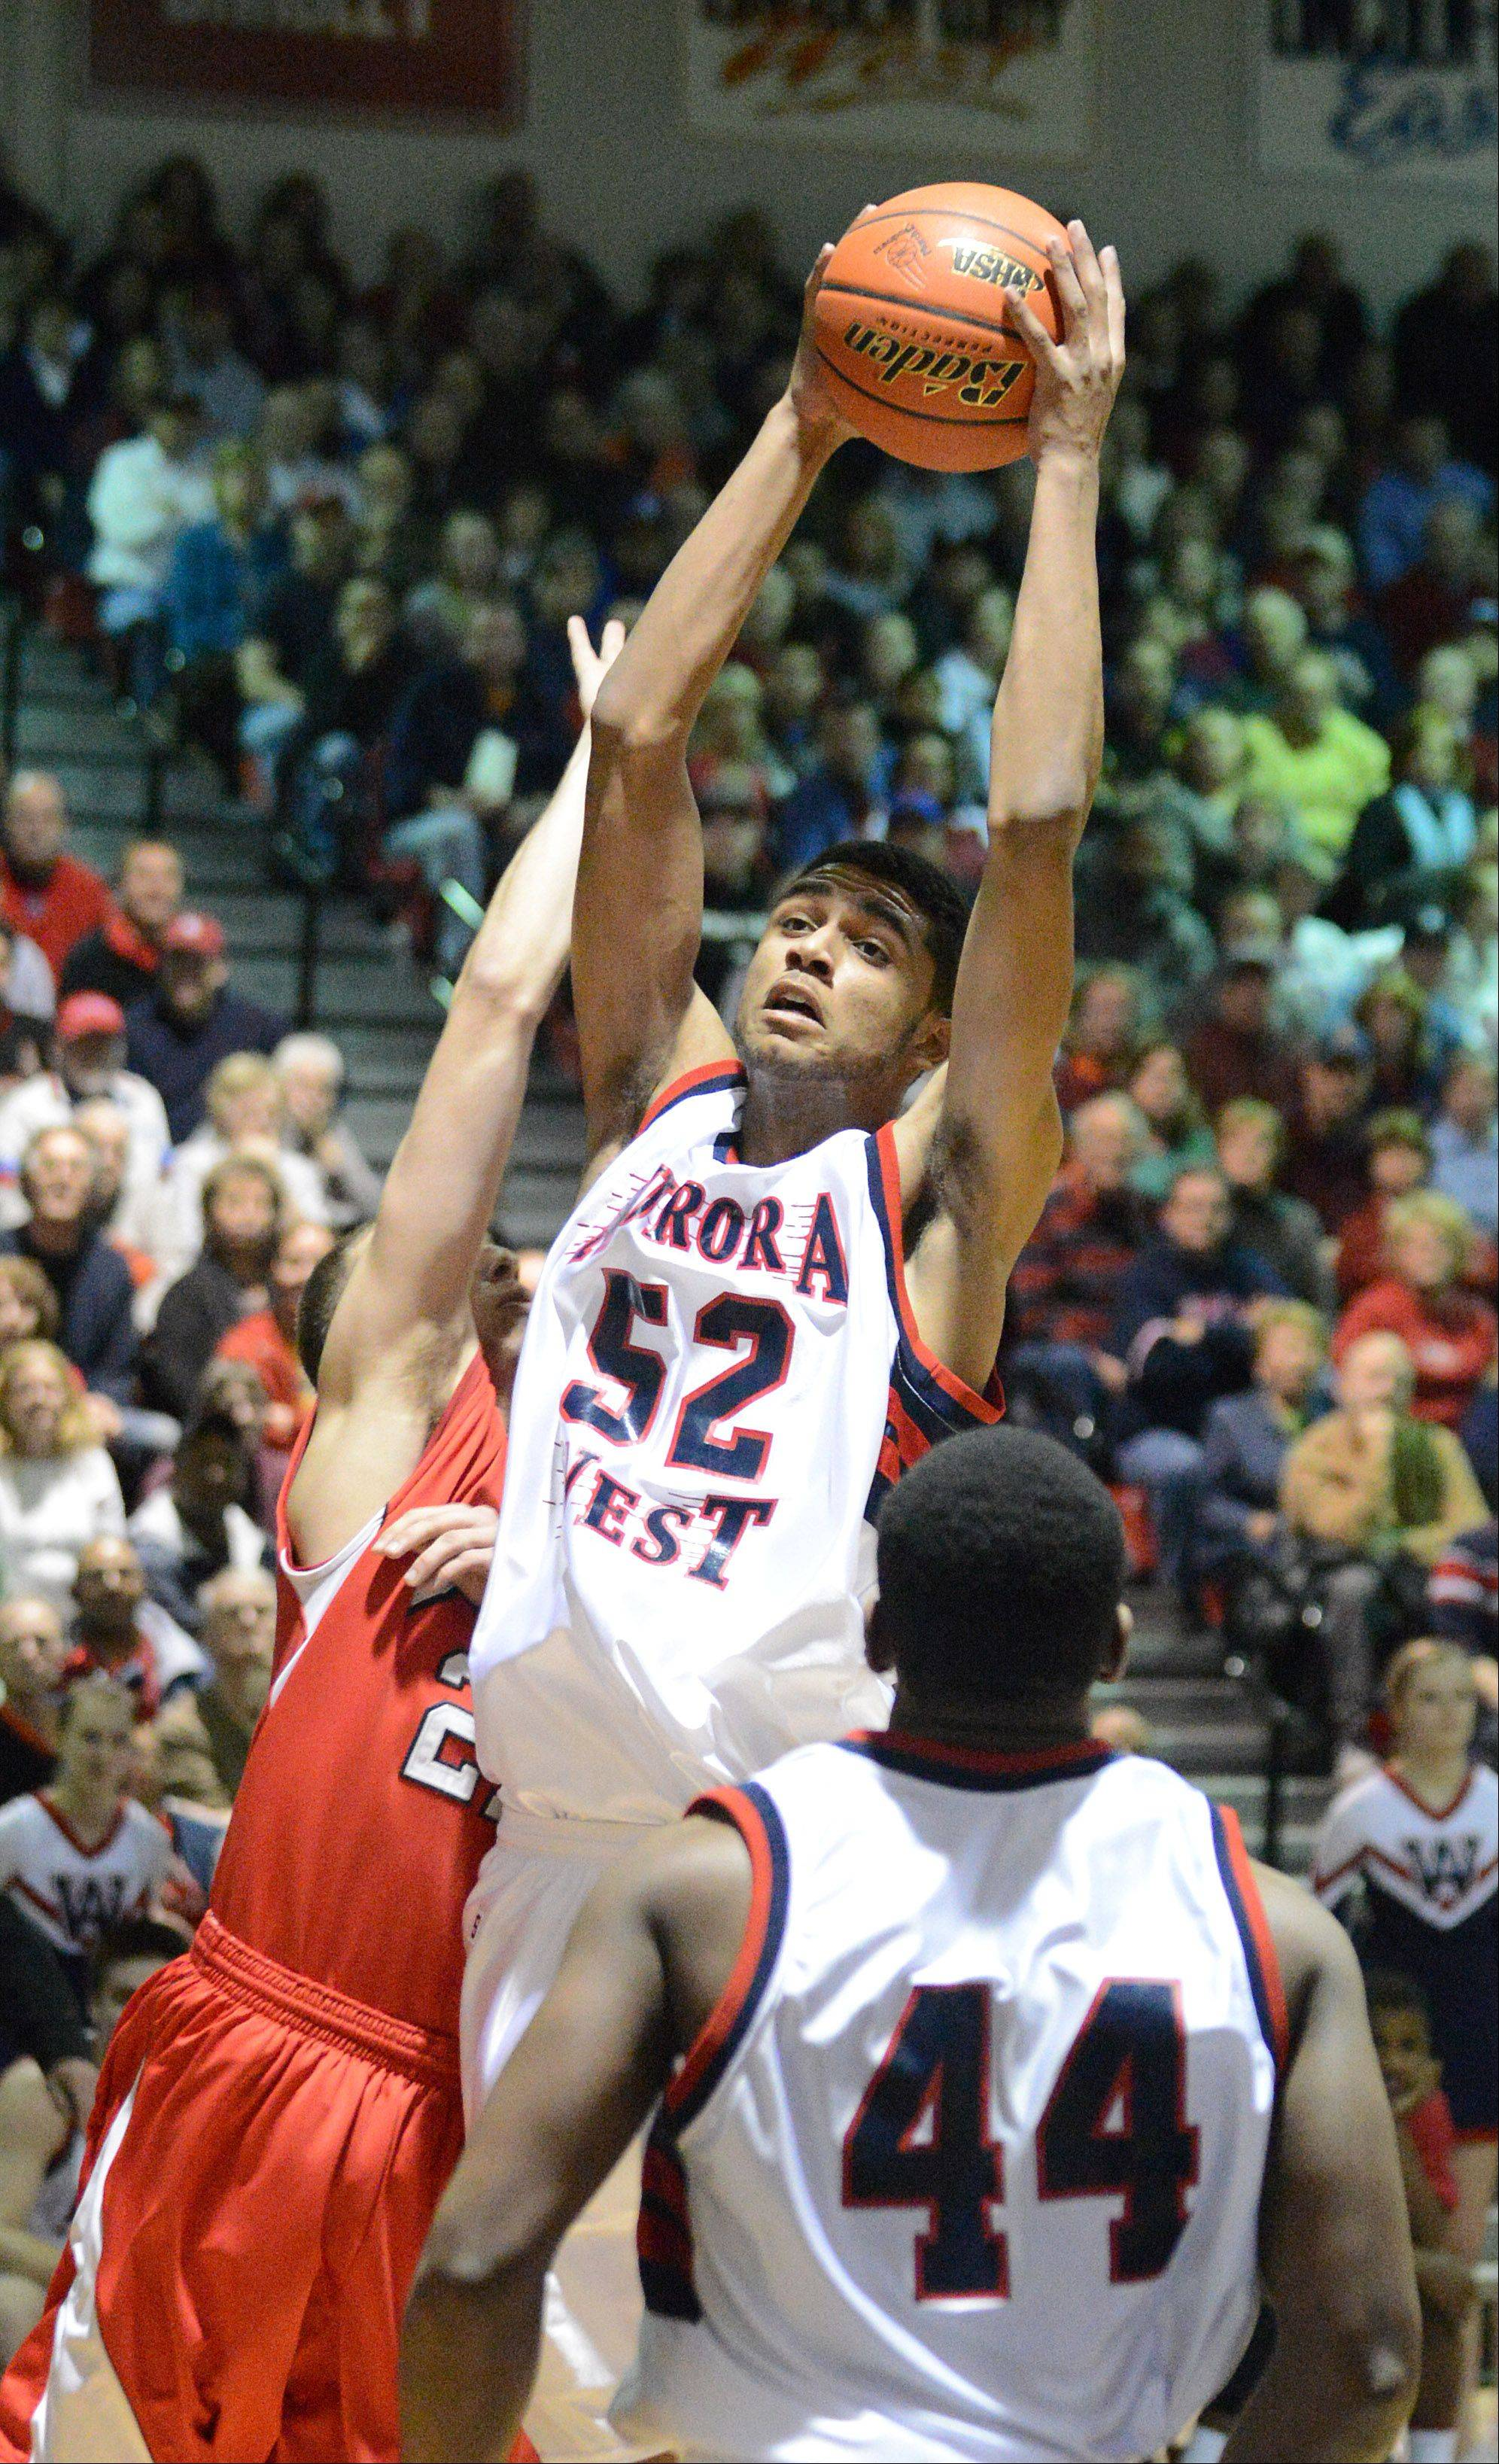 Joshua Mcauley of West Aurora on the rebound during the West Aurora vs. Benet Bolingbrook sectional championship game Friday.